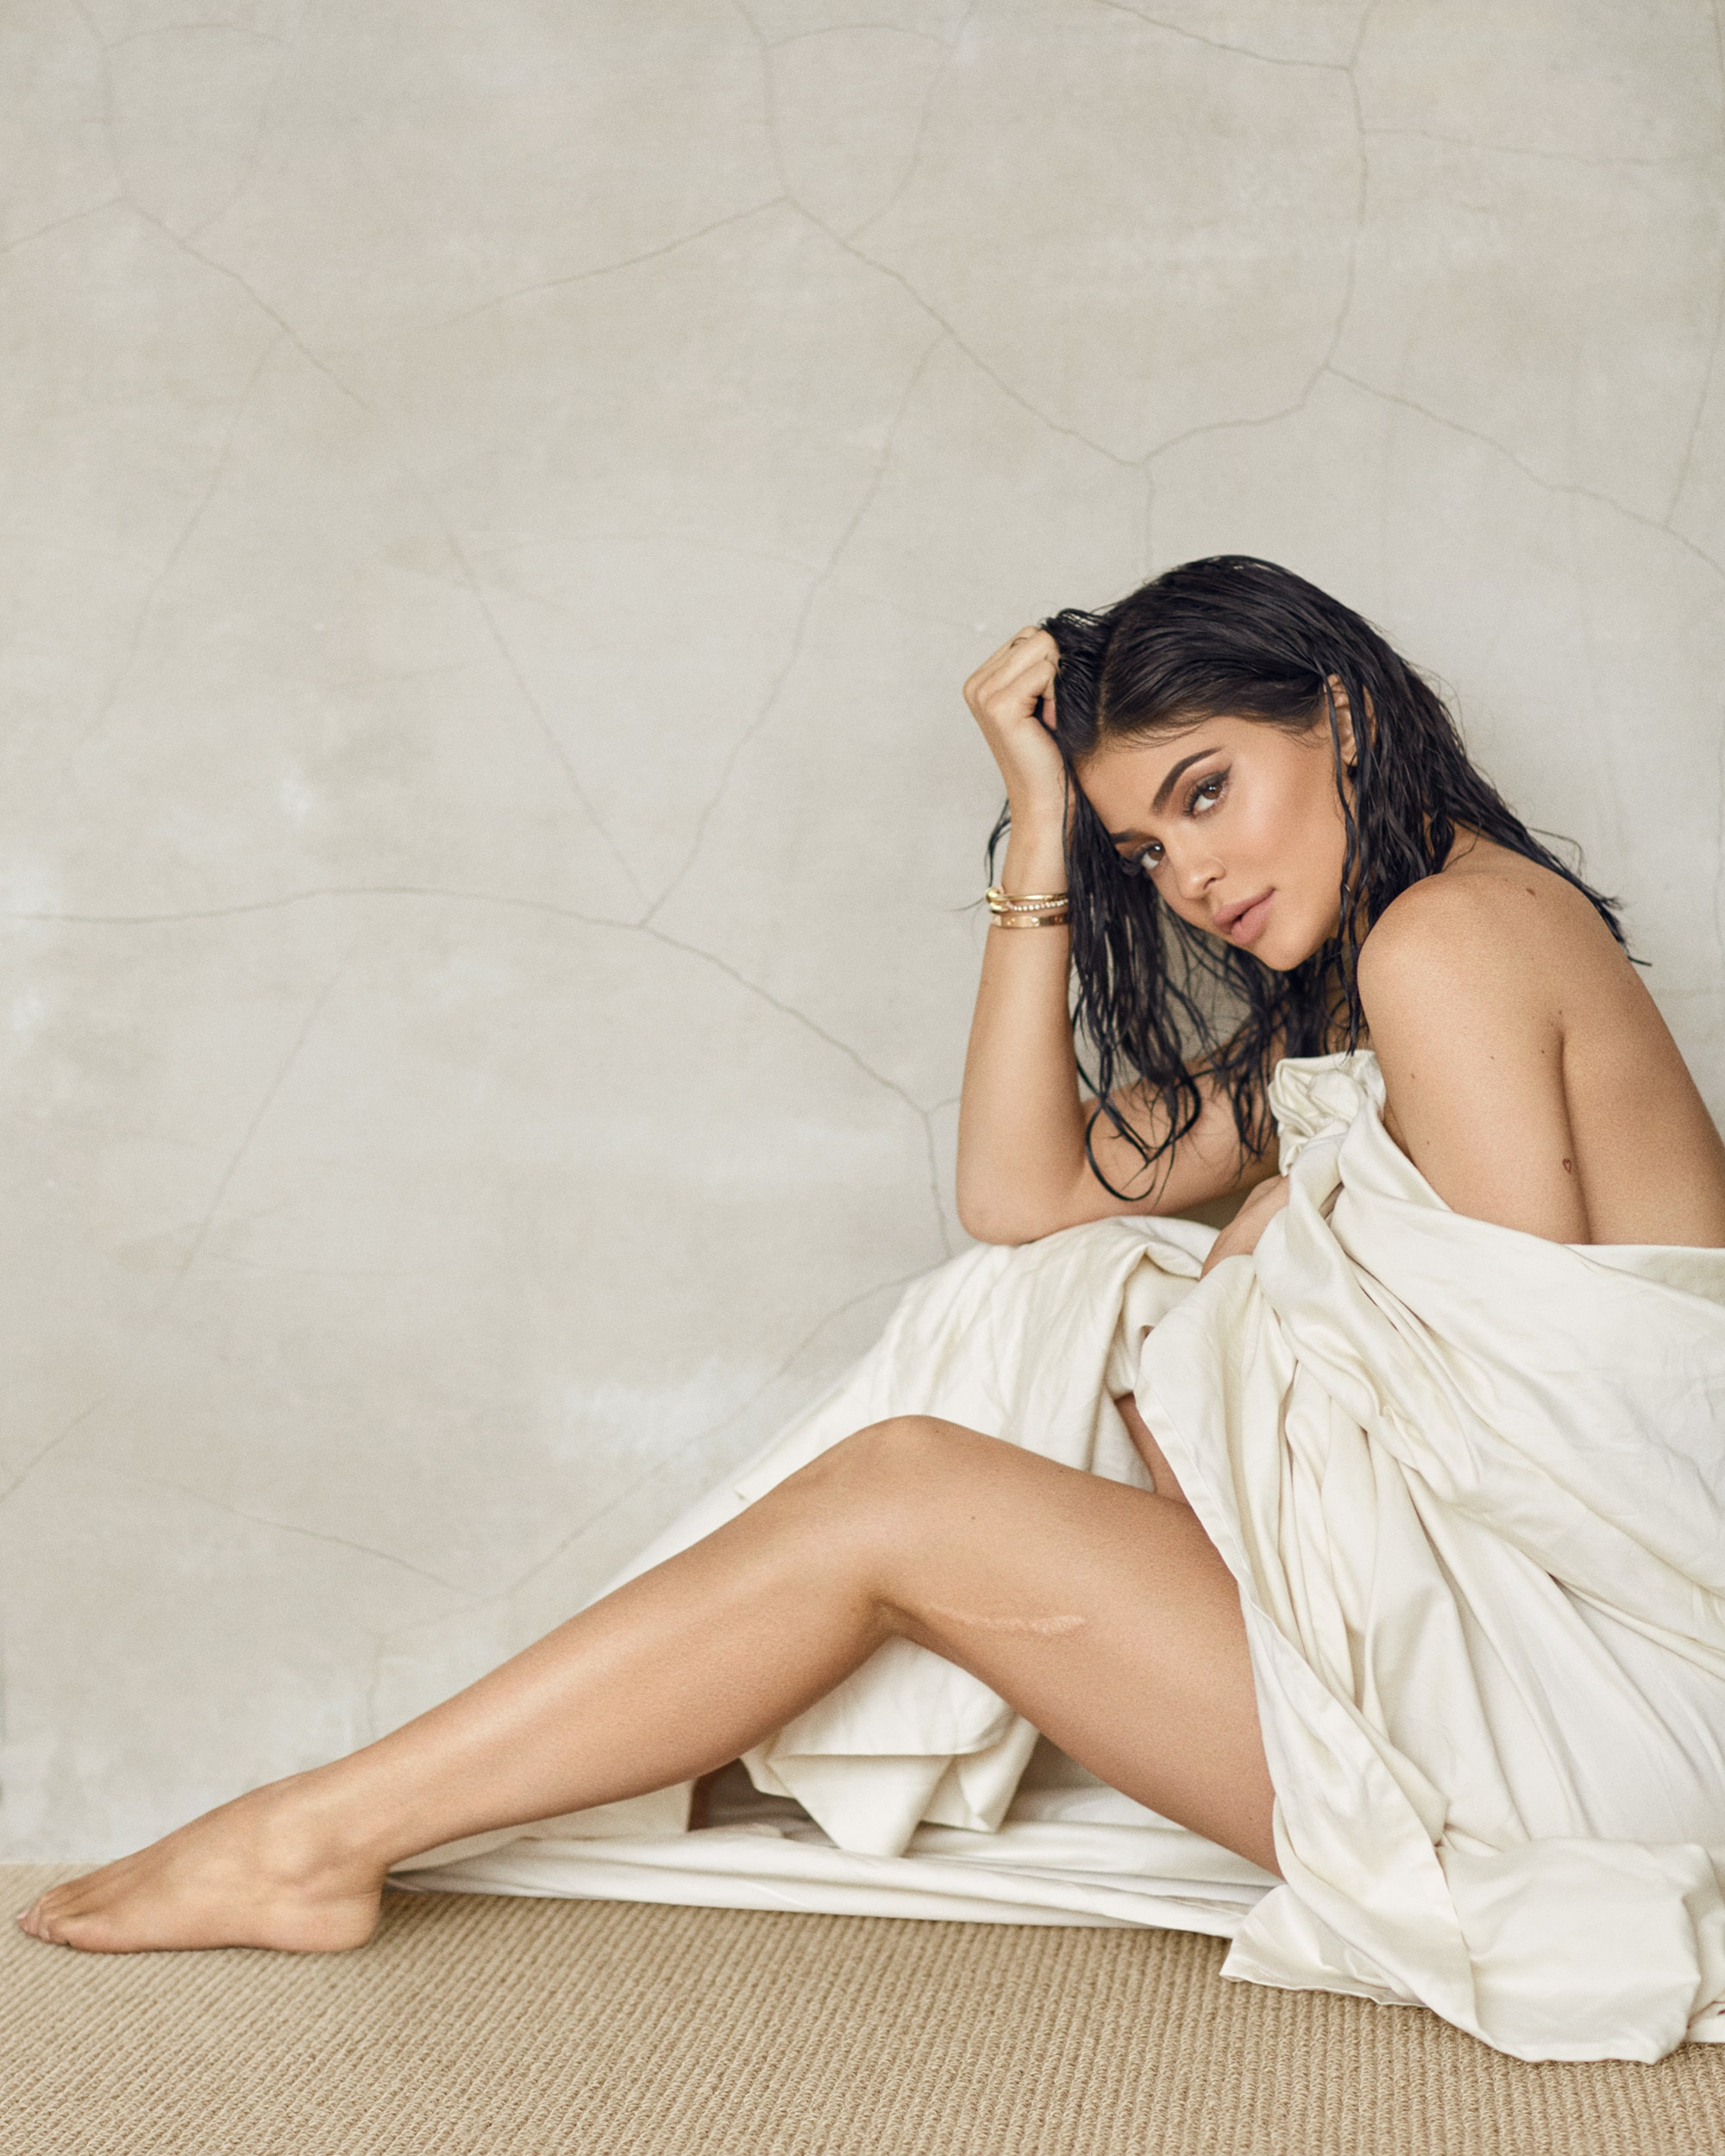 49 Sexy Kylie Jenner Feet Pictures Prove That She Has